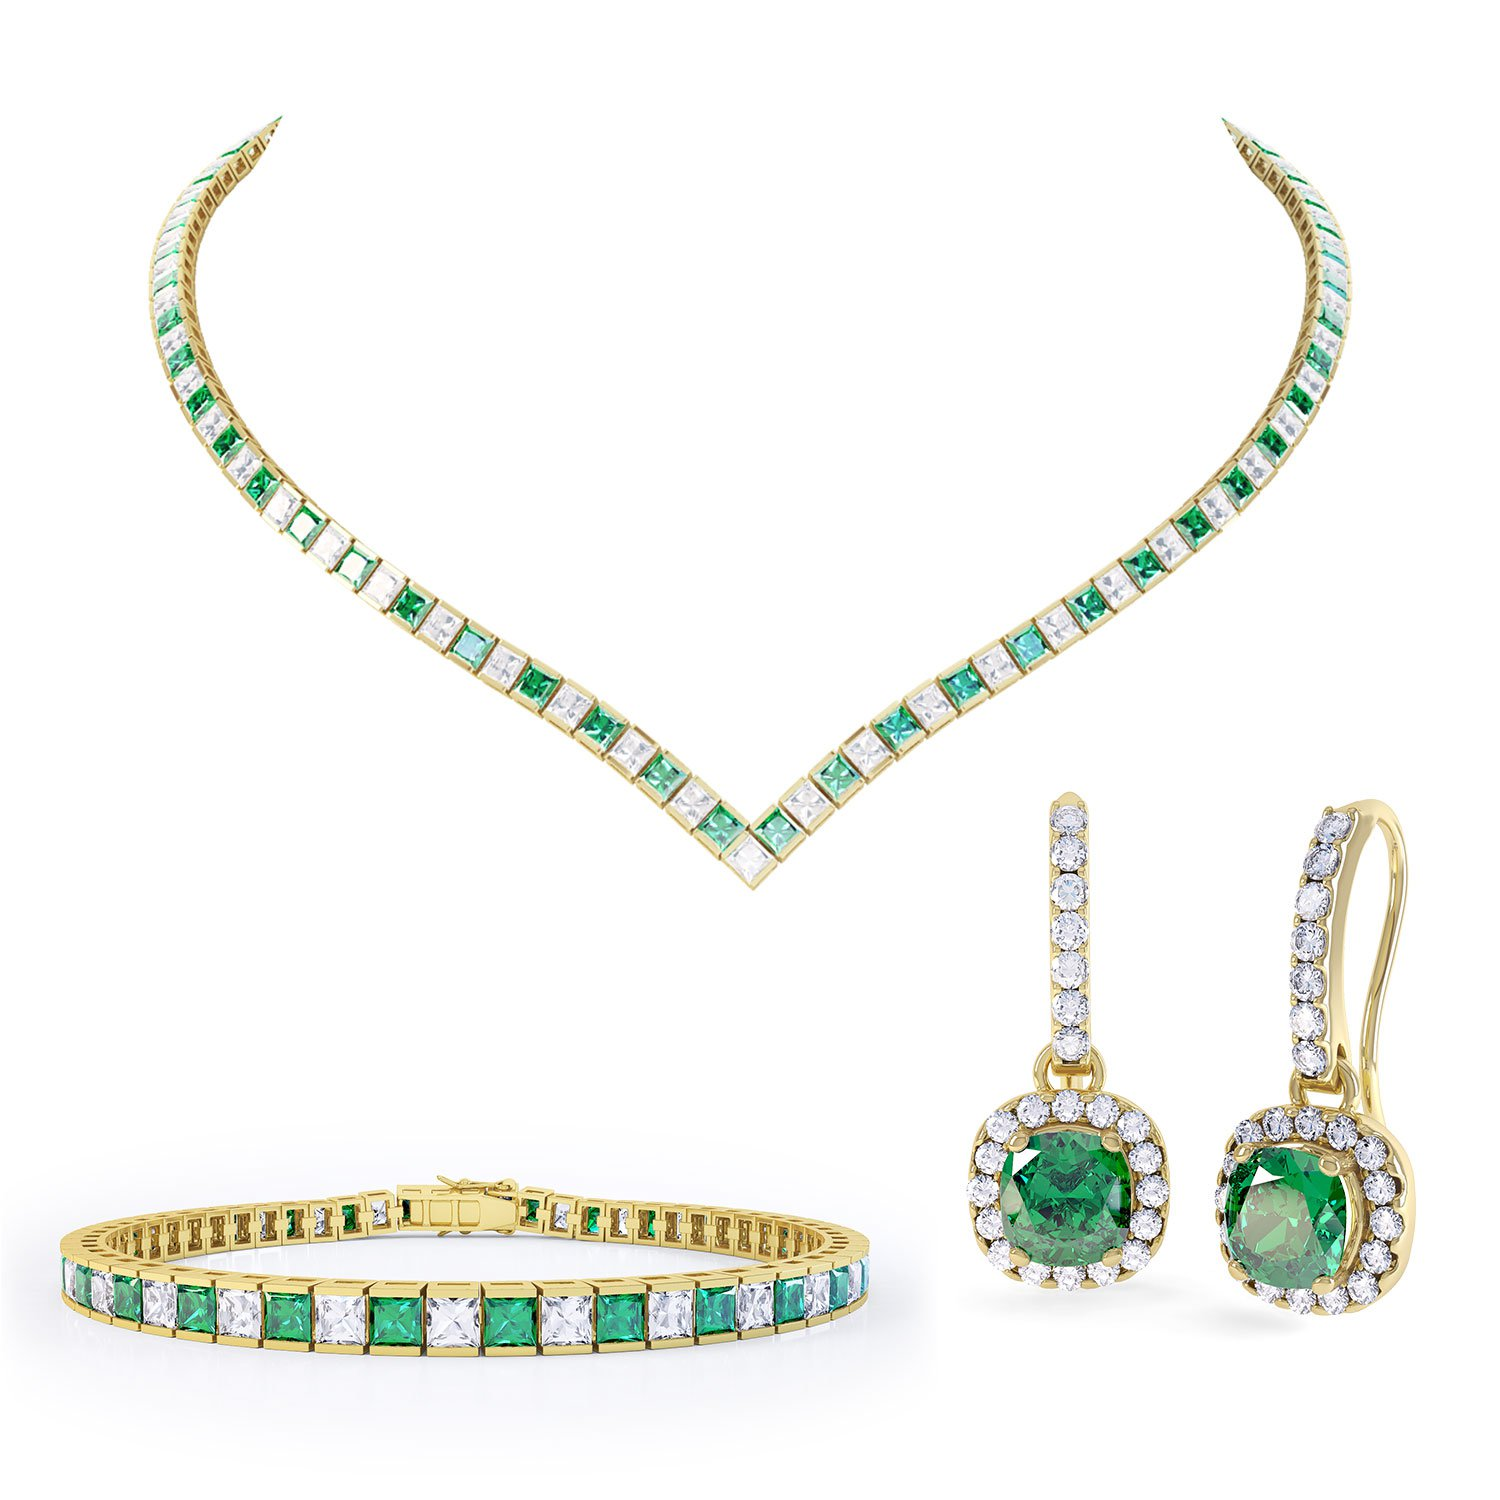 Princess Emerald 18ct Gold Vermeil Jewellery Set